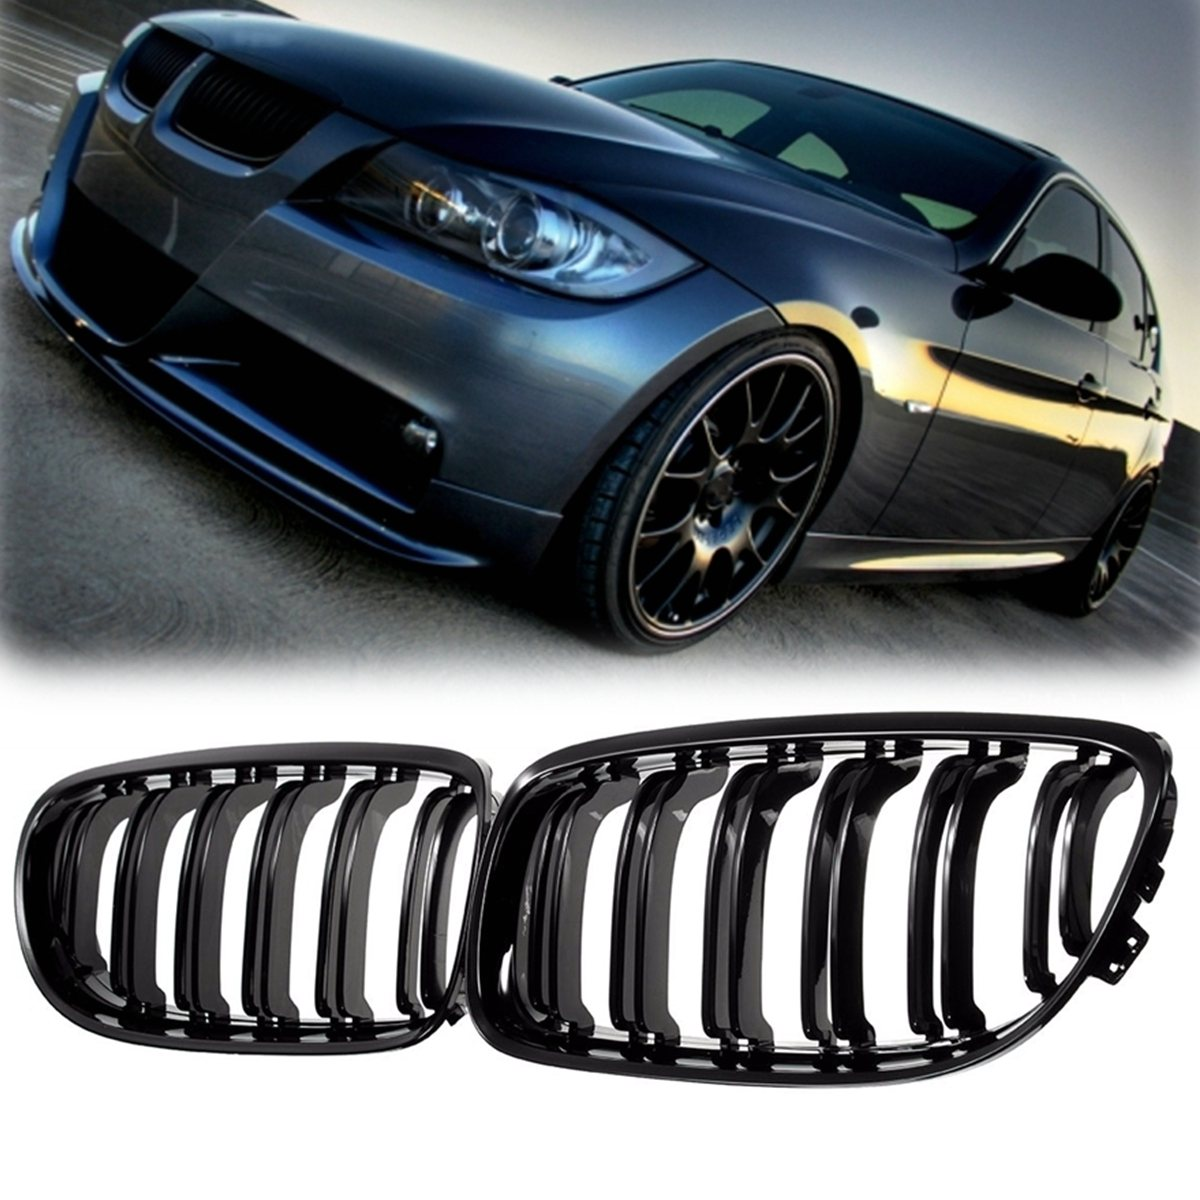 US $23.17 15% OFF|Pair Matte/Gloss Black Car Front Grille For BMW E90 LCI 3 Series Sedan/Wagon 09 11 Racing Grills|front grille for bmw|grill for bmw|front grill - AliExpress